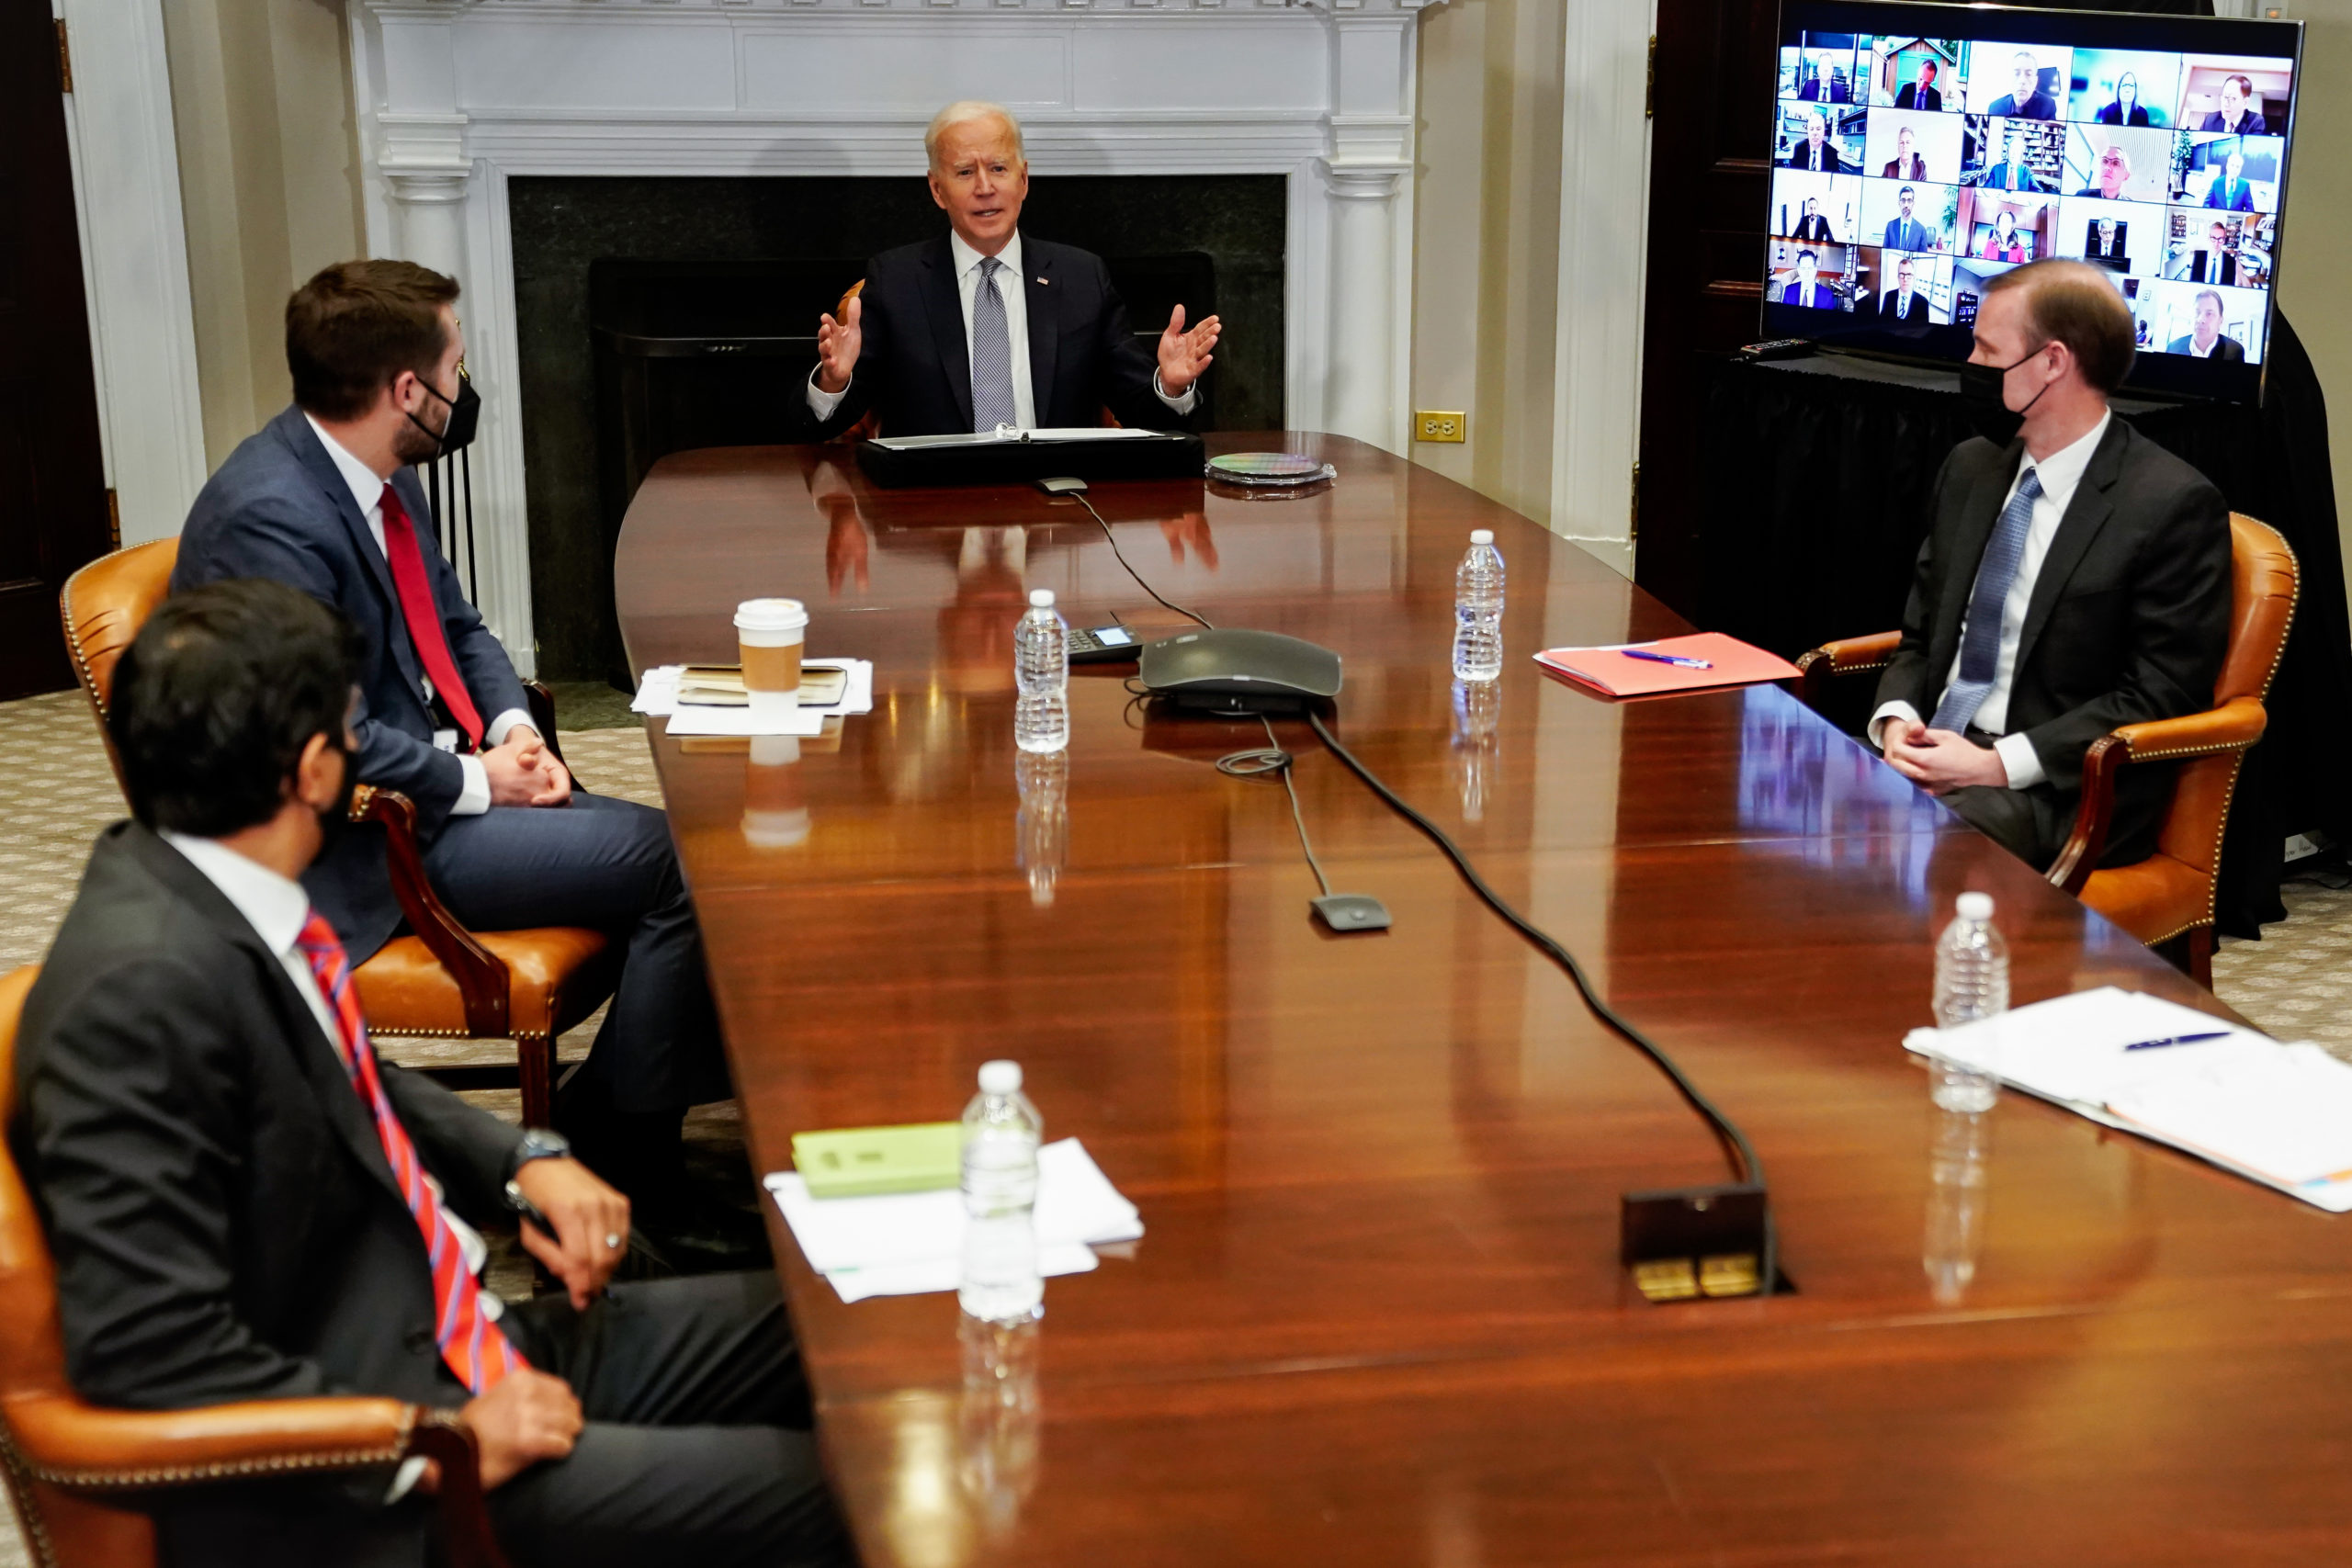 President Joe Biden speaks during a CEO Summit via video conference with National Economic Council Director Brian Deese and others on Monday. (Amr Alfiky/Pool/Getty Images)